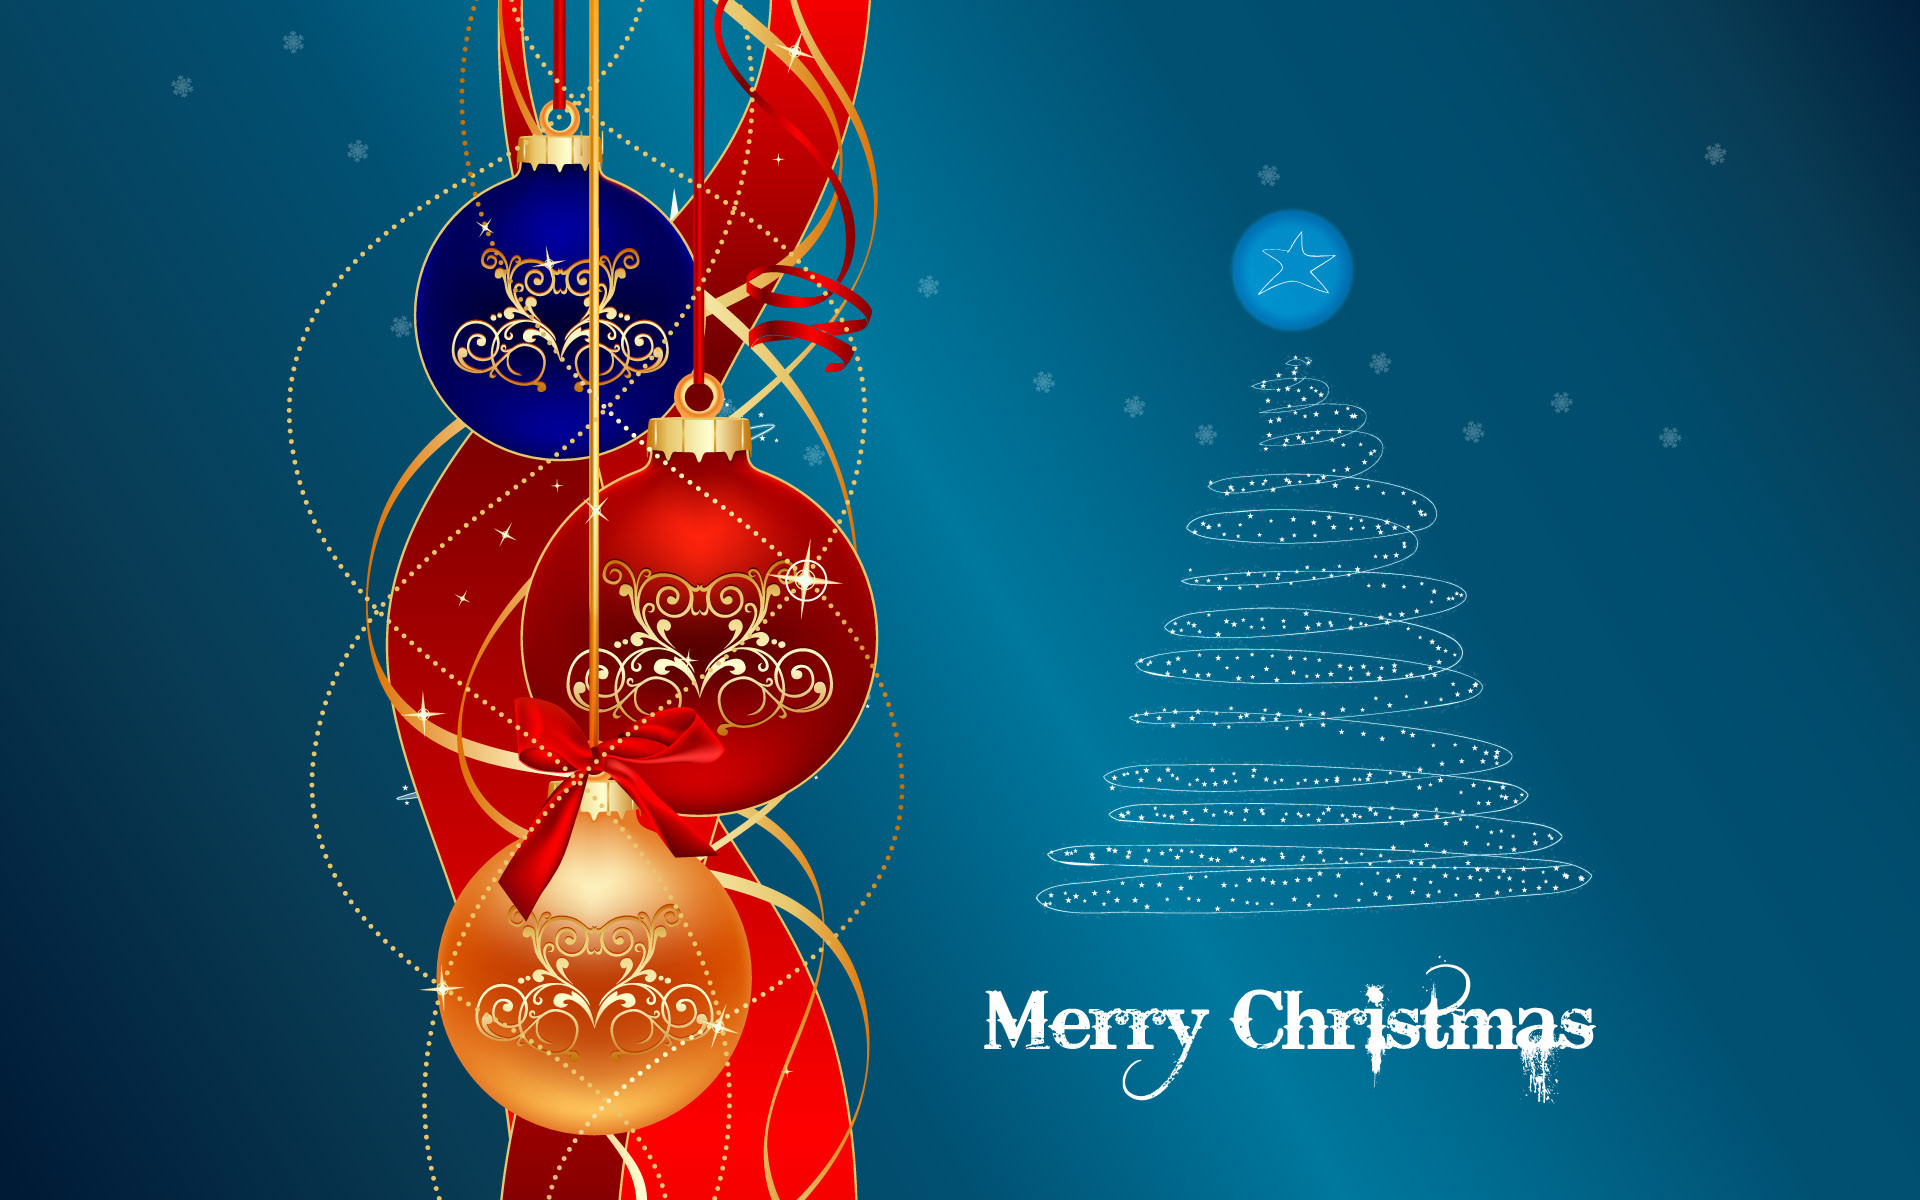 … christmas hd wallpapers pictures images; wallpaper of merry christmas  wallpapersafari …